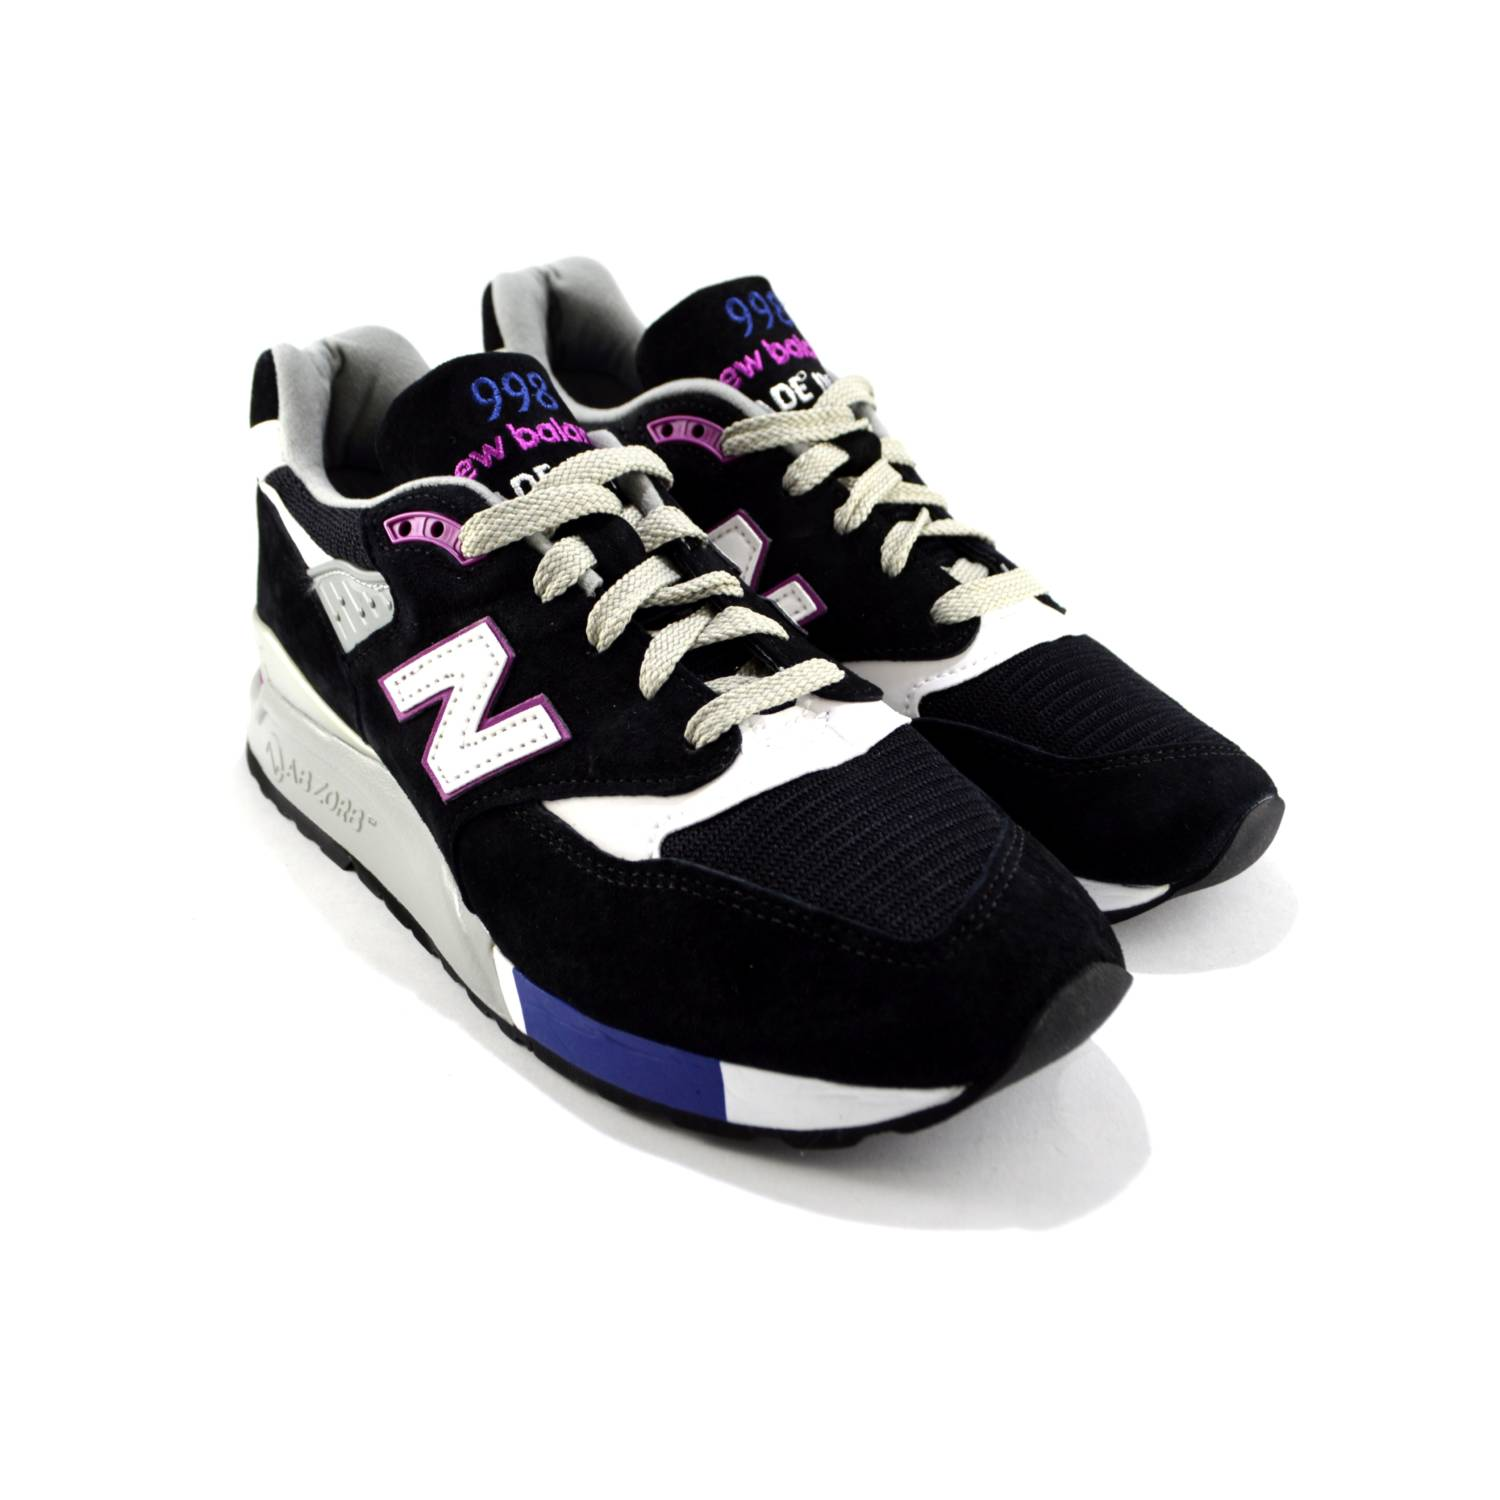 d541653d4a New Balance 998 BK Made in USA - 247 Italia Style